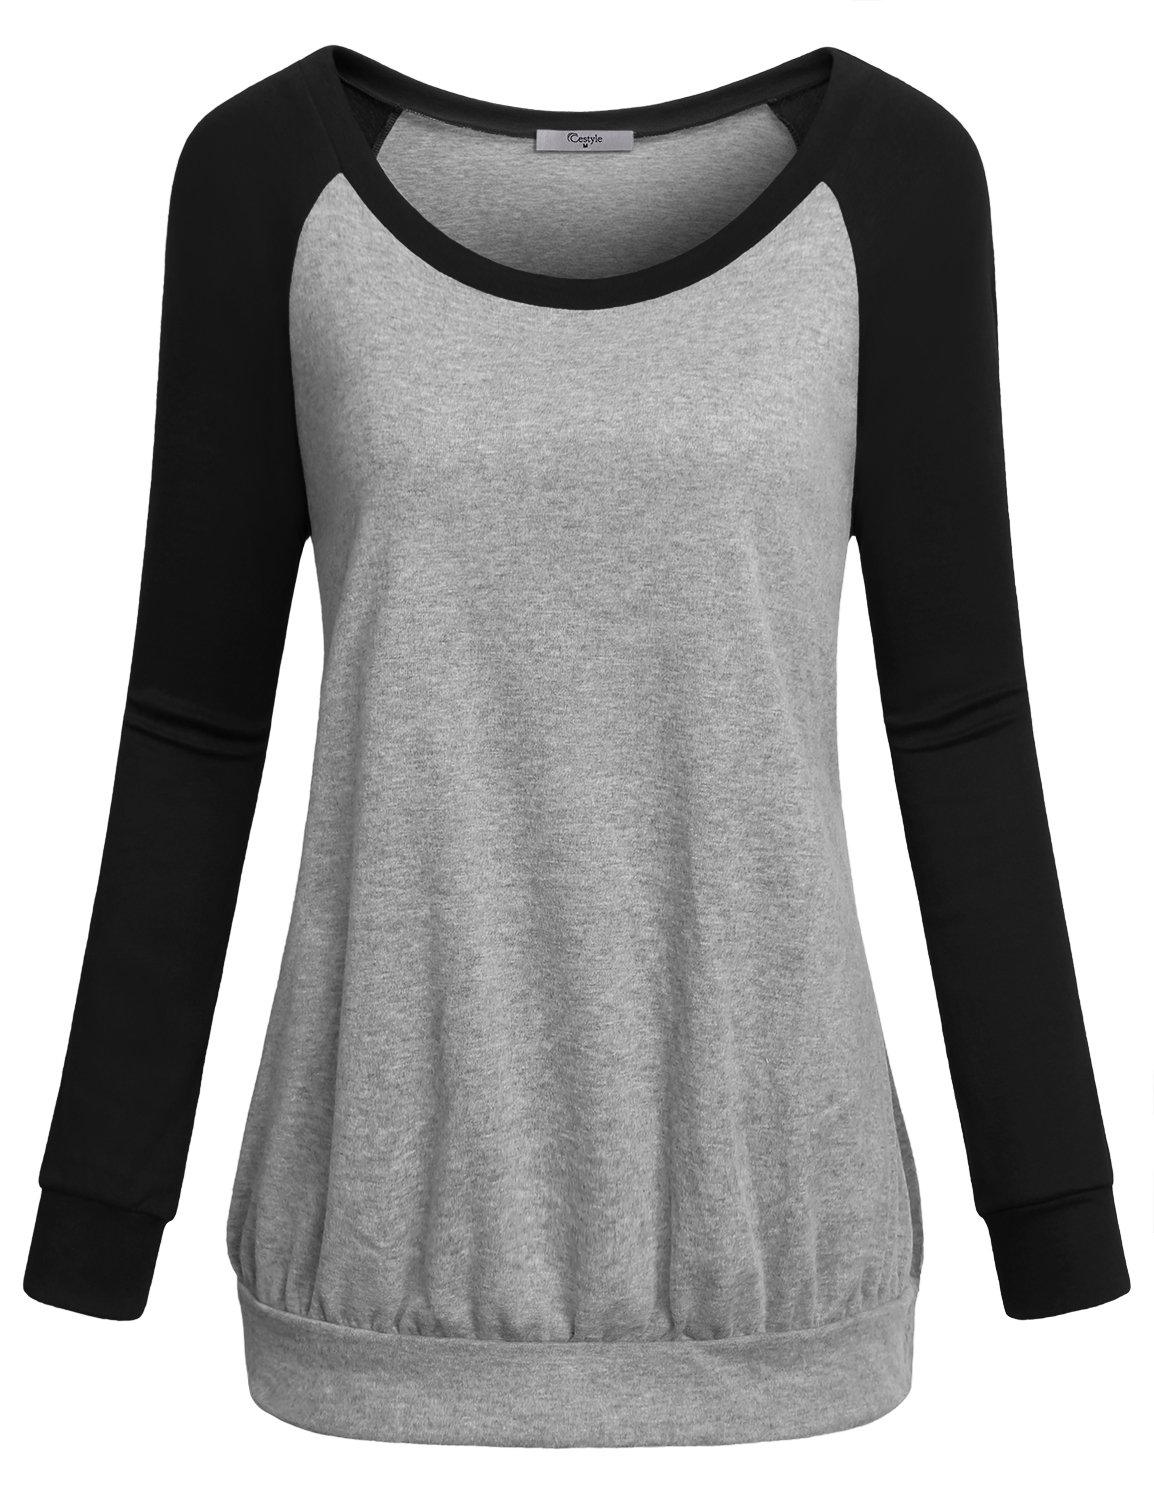 Cestyle Banded Bottom Tops for Women, Ladies Classy Long Sleeve Scoop Neck Cute Tunic Pullover Loose Fit Cotton Blend Workout Shirts Black X-Large